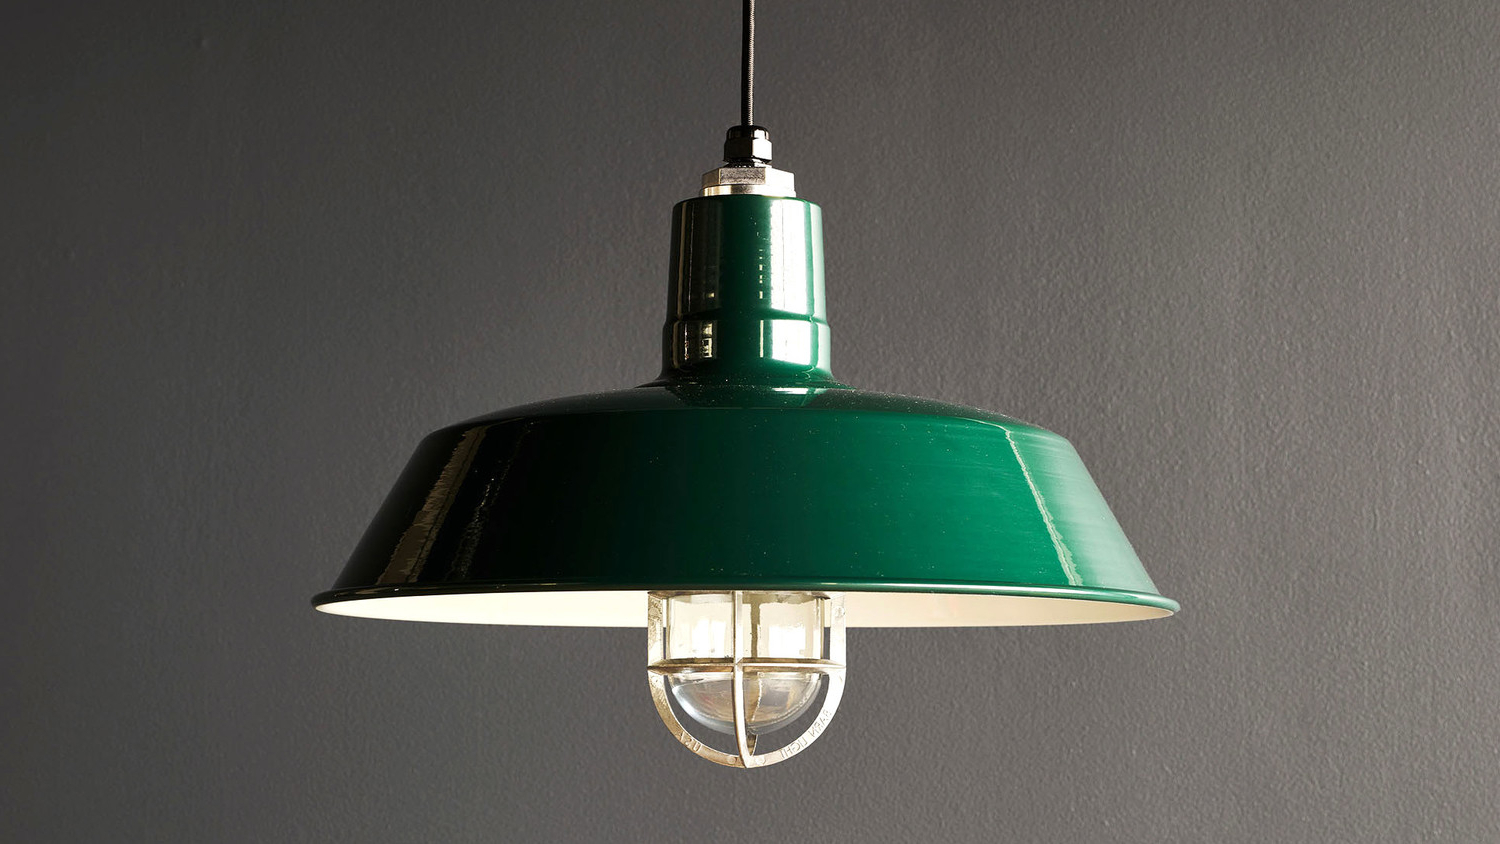 Amazing Deals On Scruggs 1 Light Geometric Pendant Finish With Regard To Well Known Scruggs 1 Light Geometric Pendants (View 4 of 25)